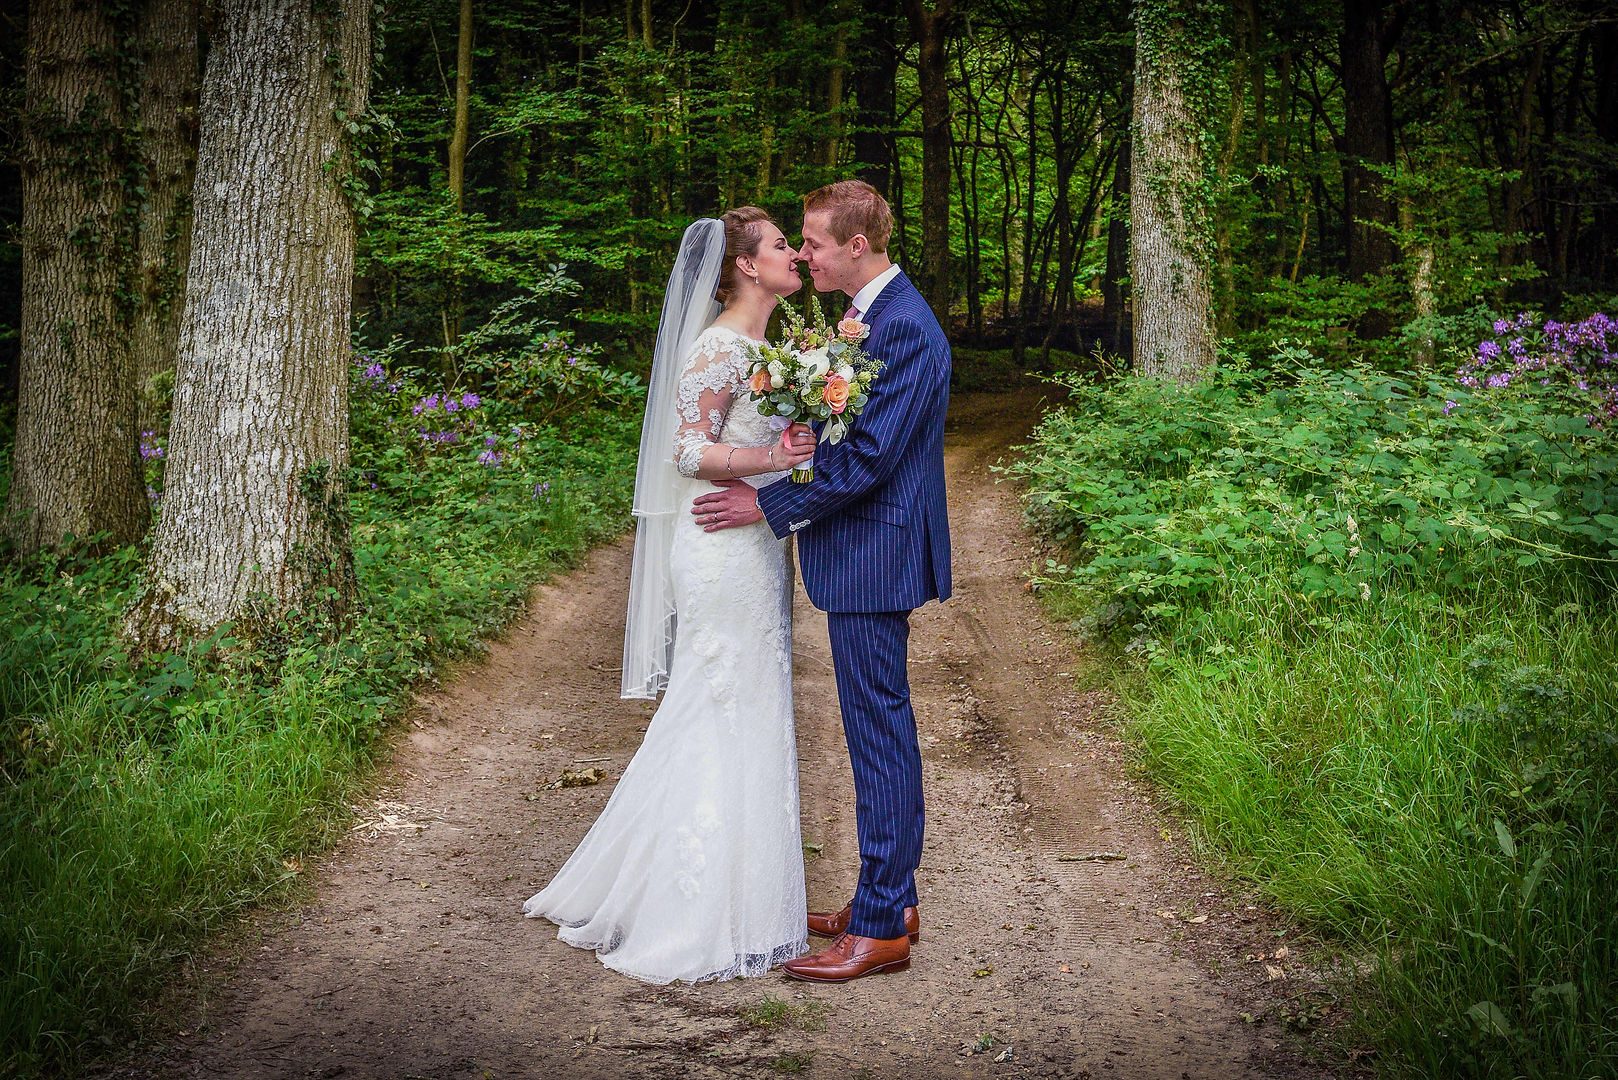 East sussex National Wedding photographer